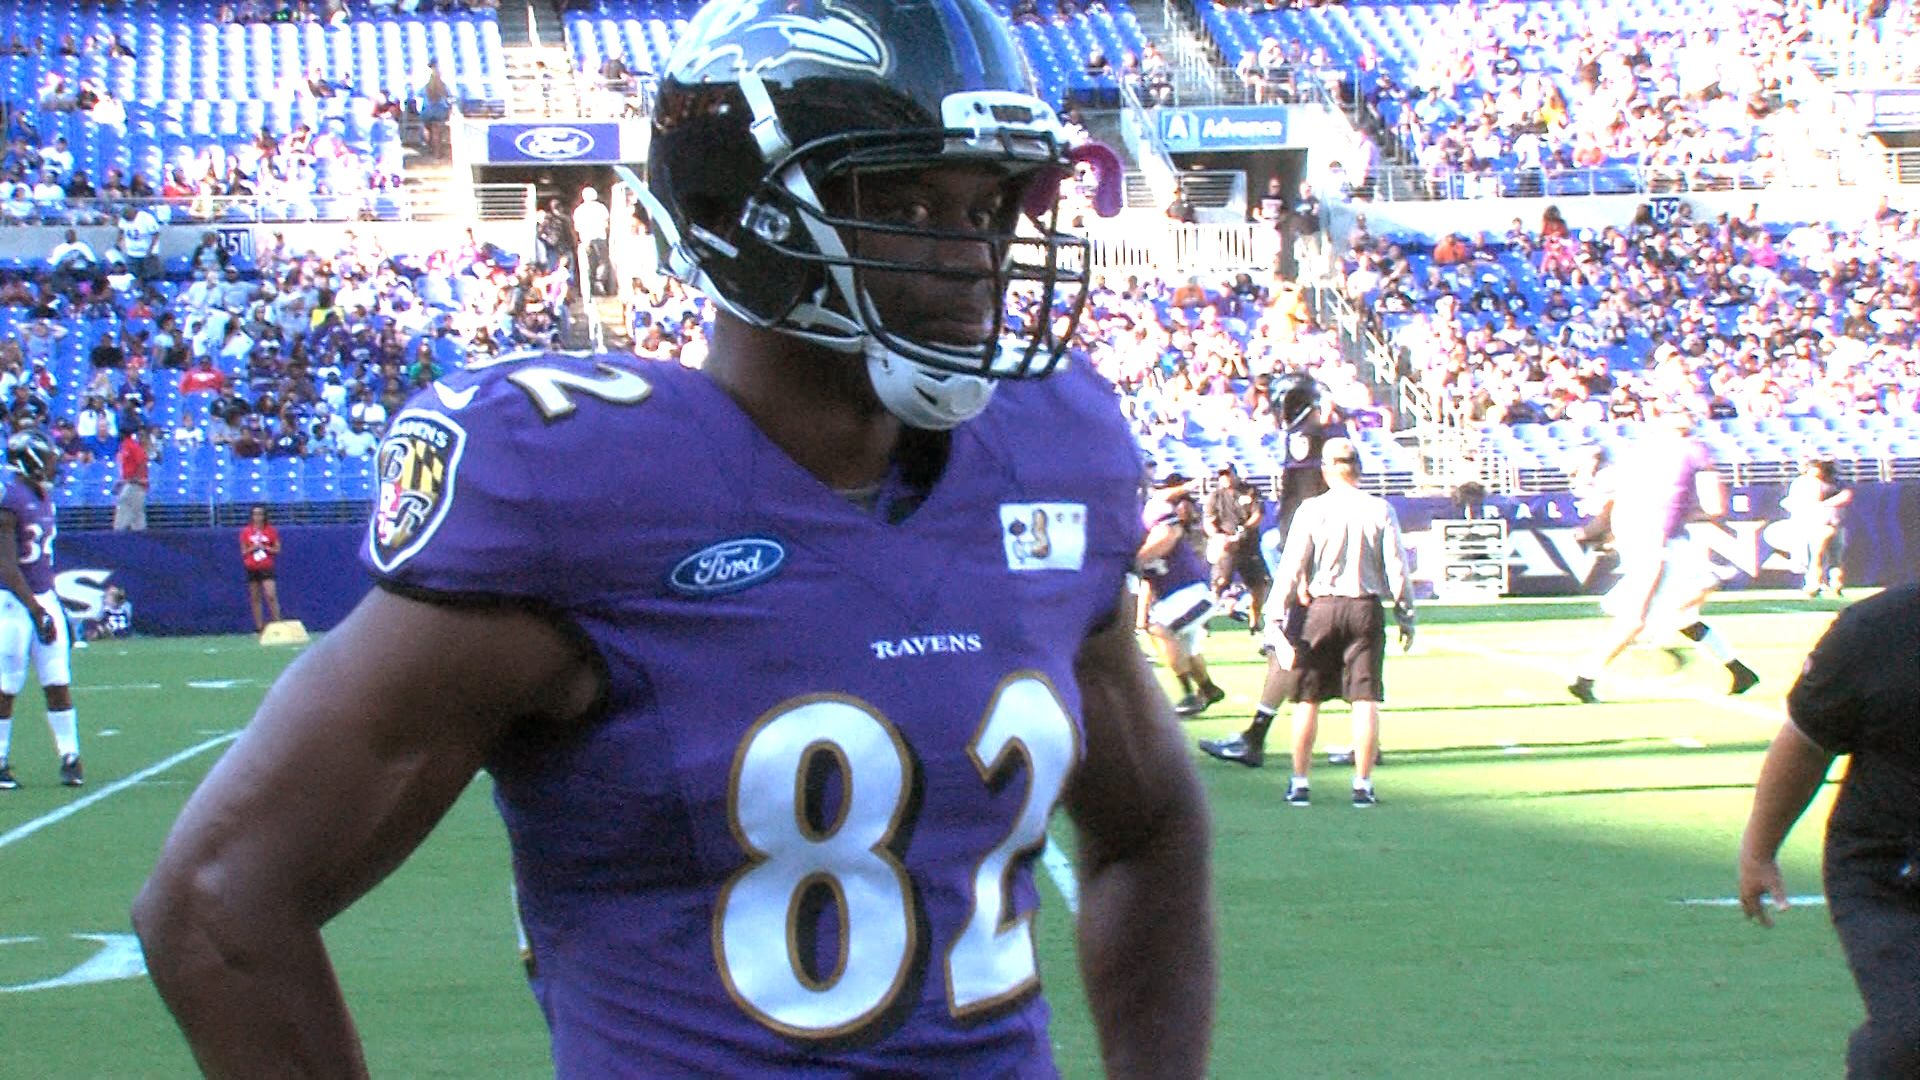 A Look At The Ravens, Eagles, and Redskins In WBOC' s NFL Kickoff Special